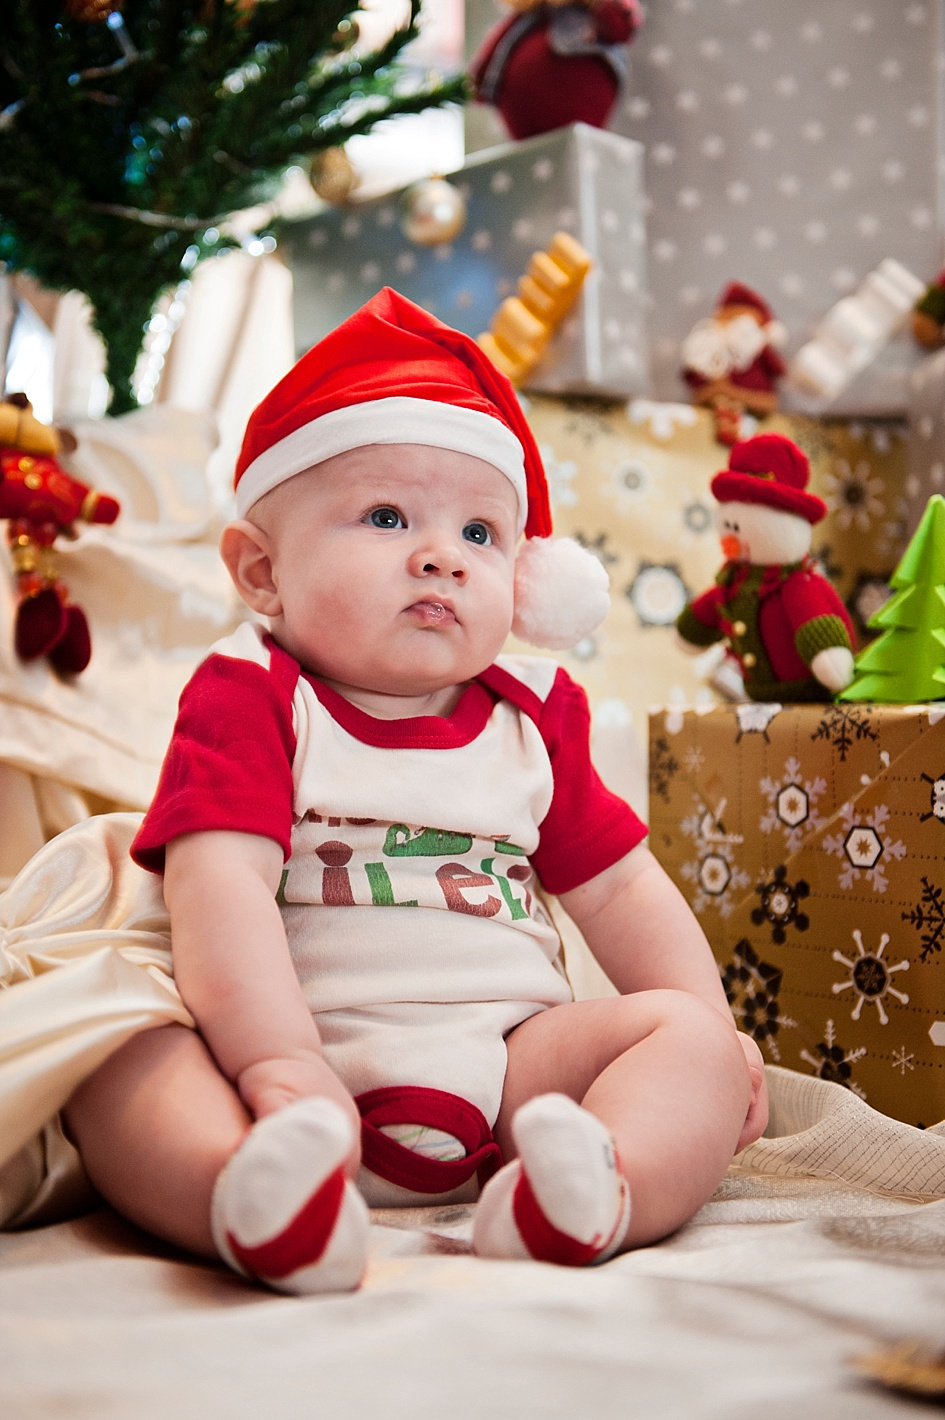 baby-christmas-photoshoot.jpg